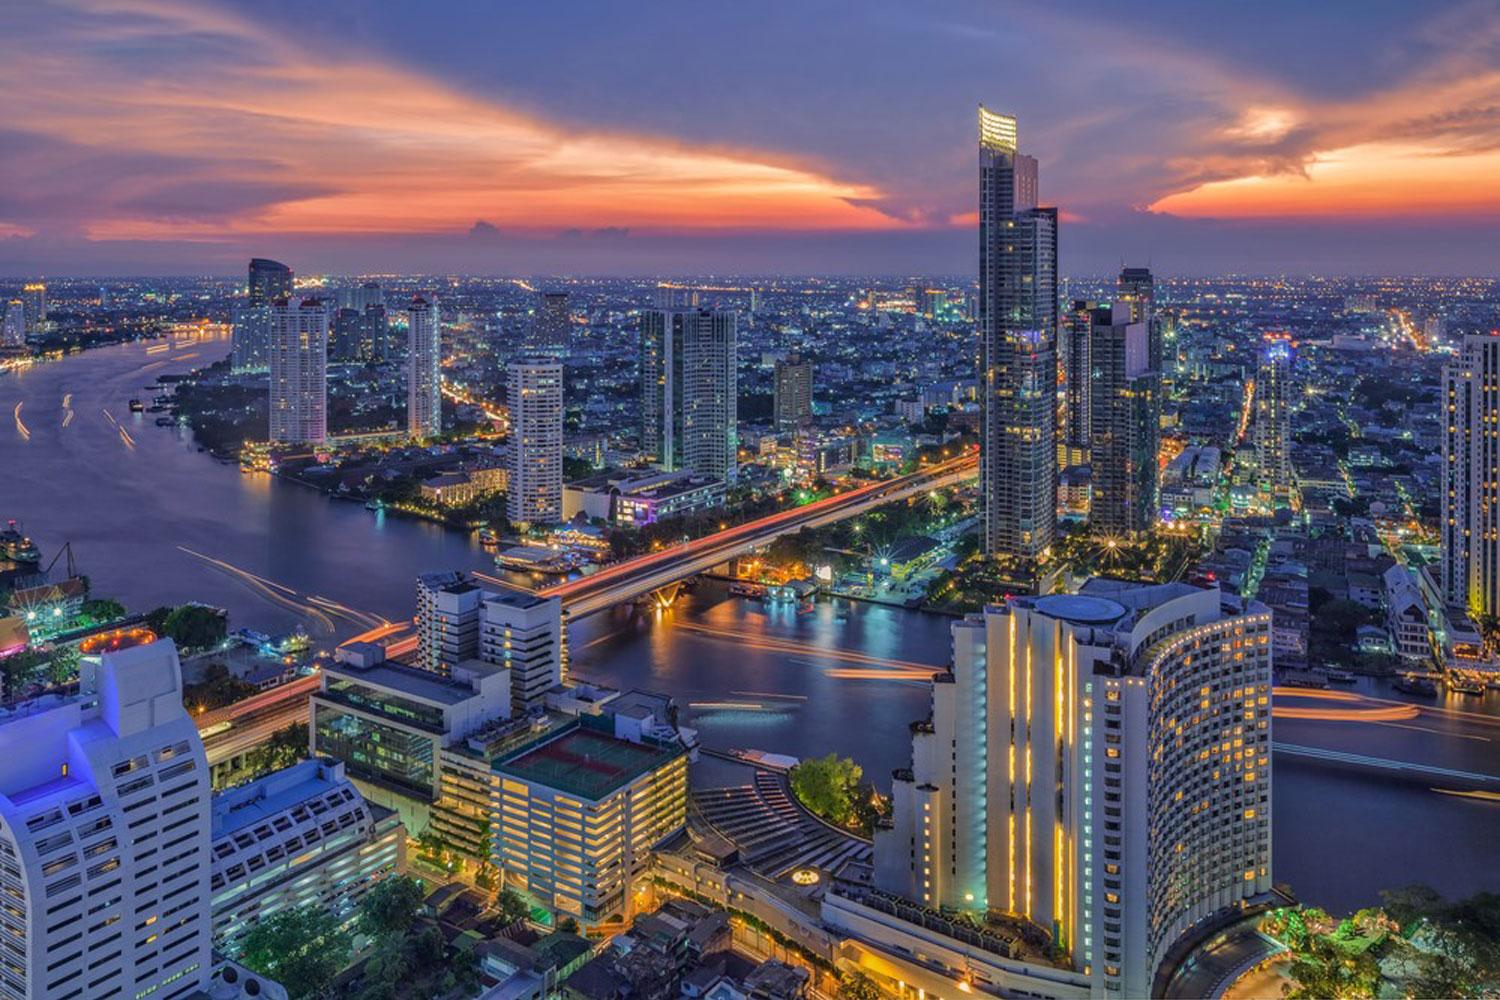 Why You Should Book A Bangkok Hotel Room Near The BTS Station